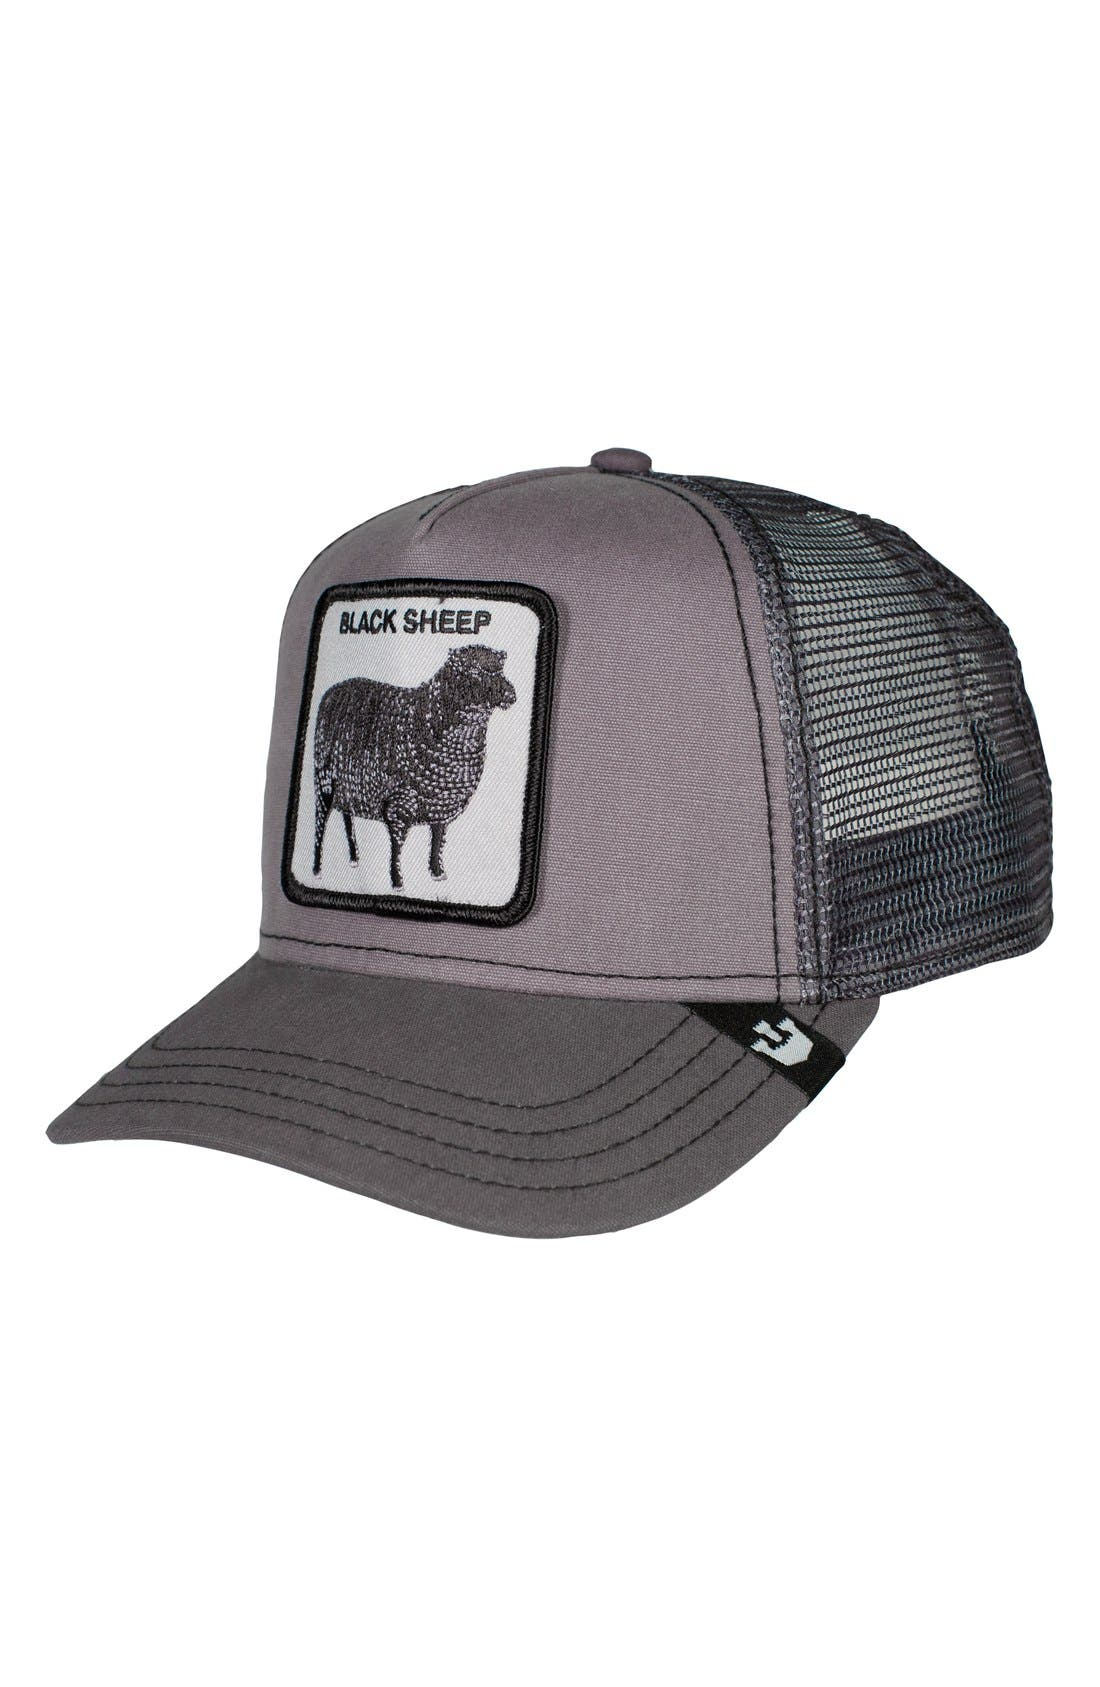 Main Image - Goorin Brothers 'Shades of Black' Mesh Trucker Hat